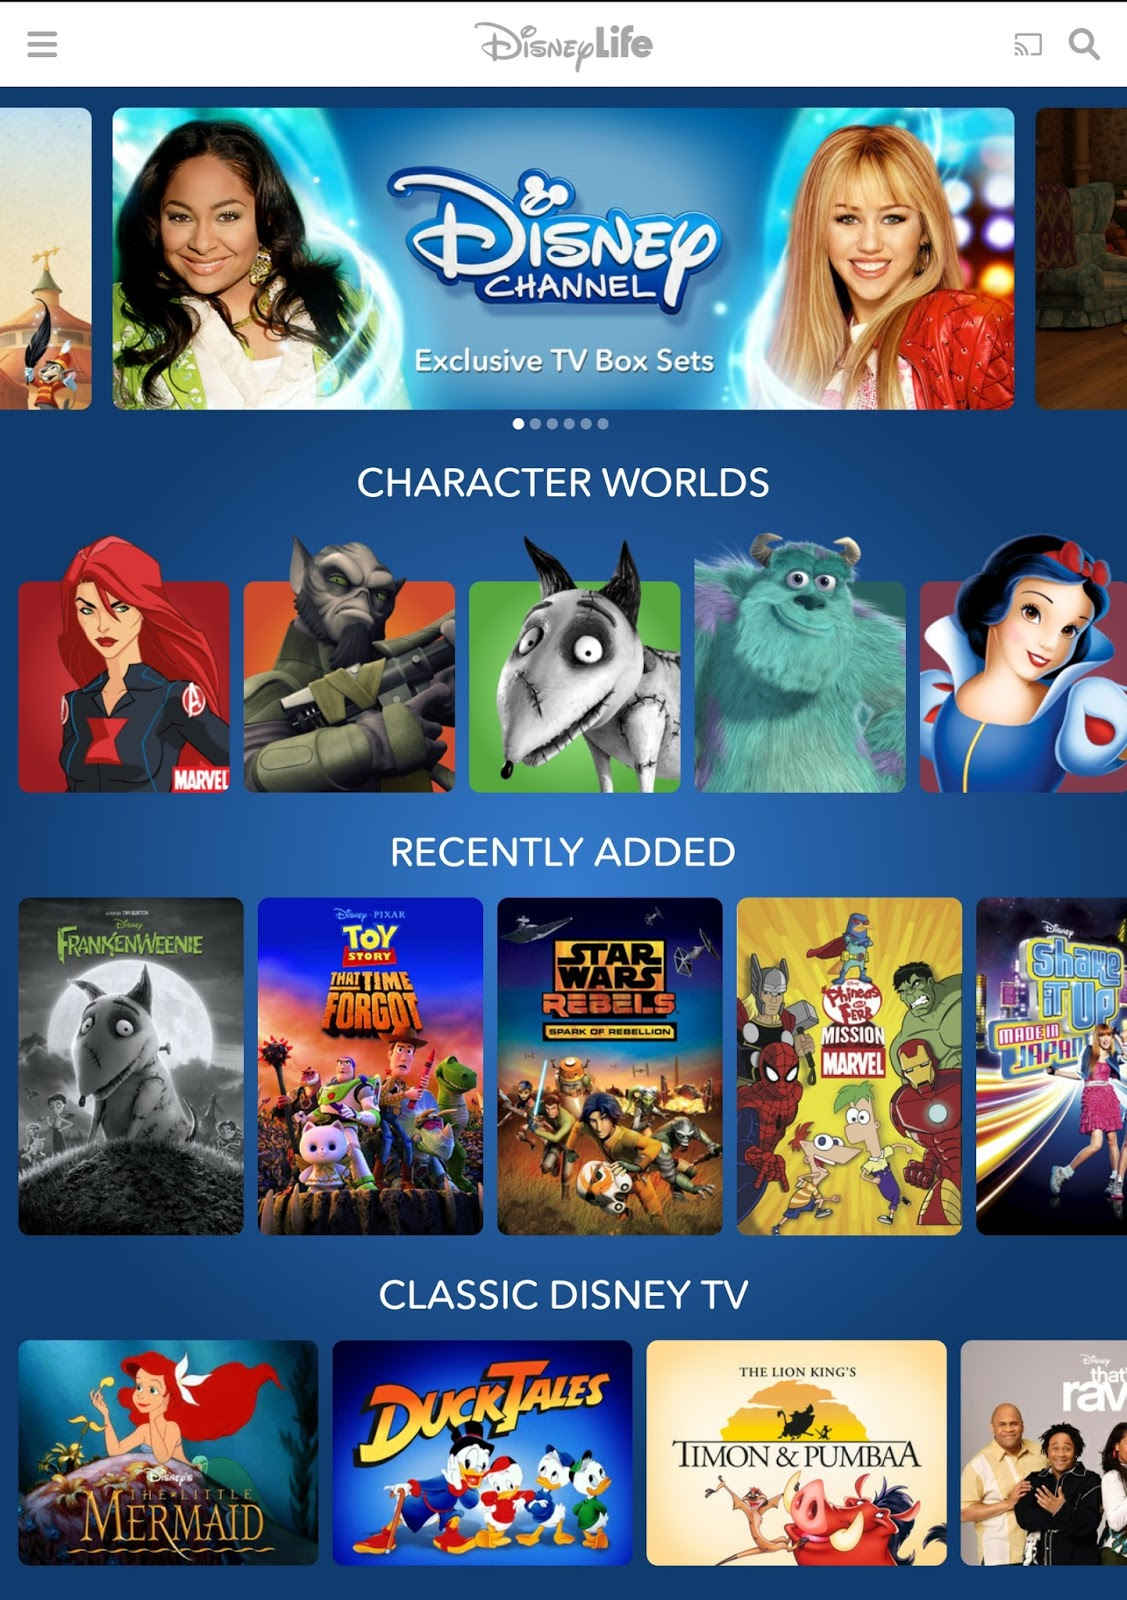 Image result for disneylife interface